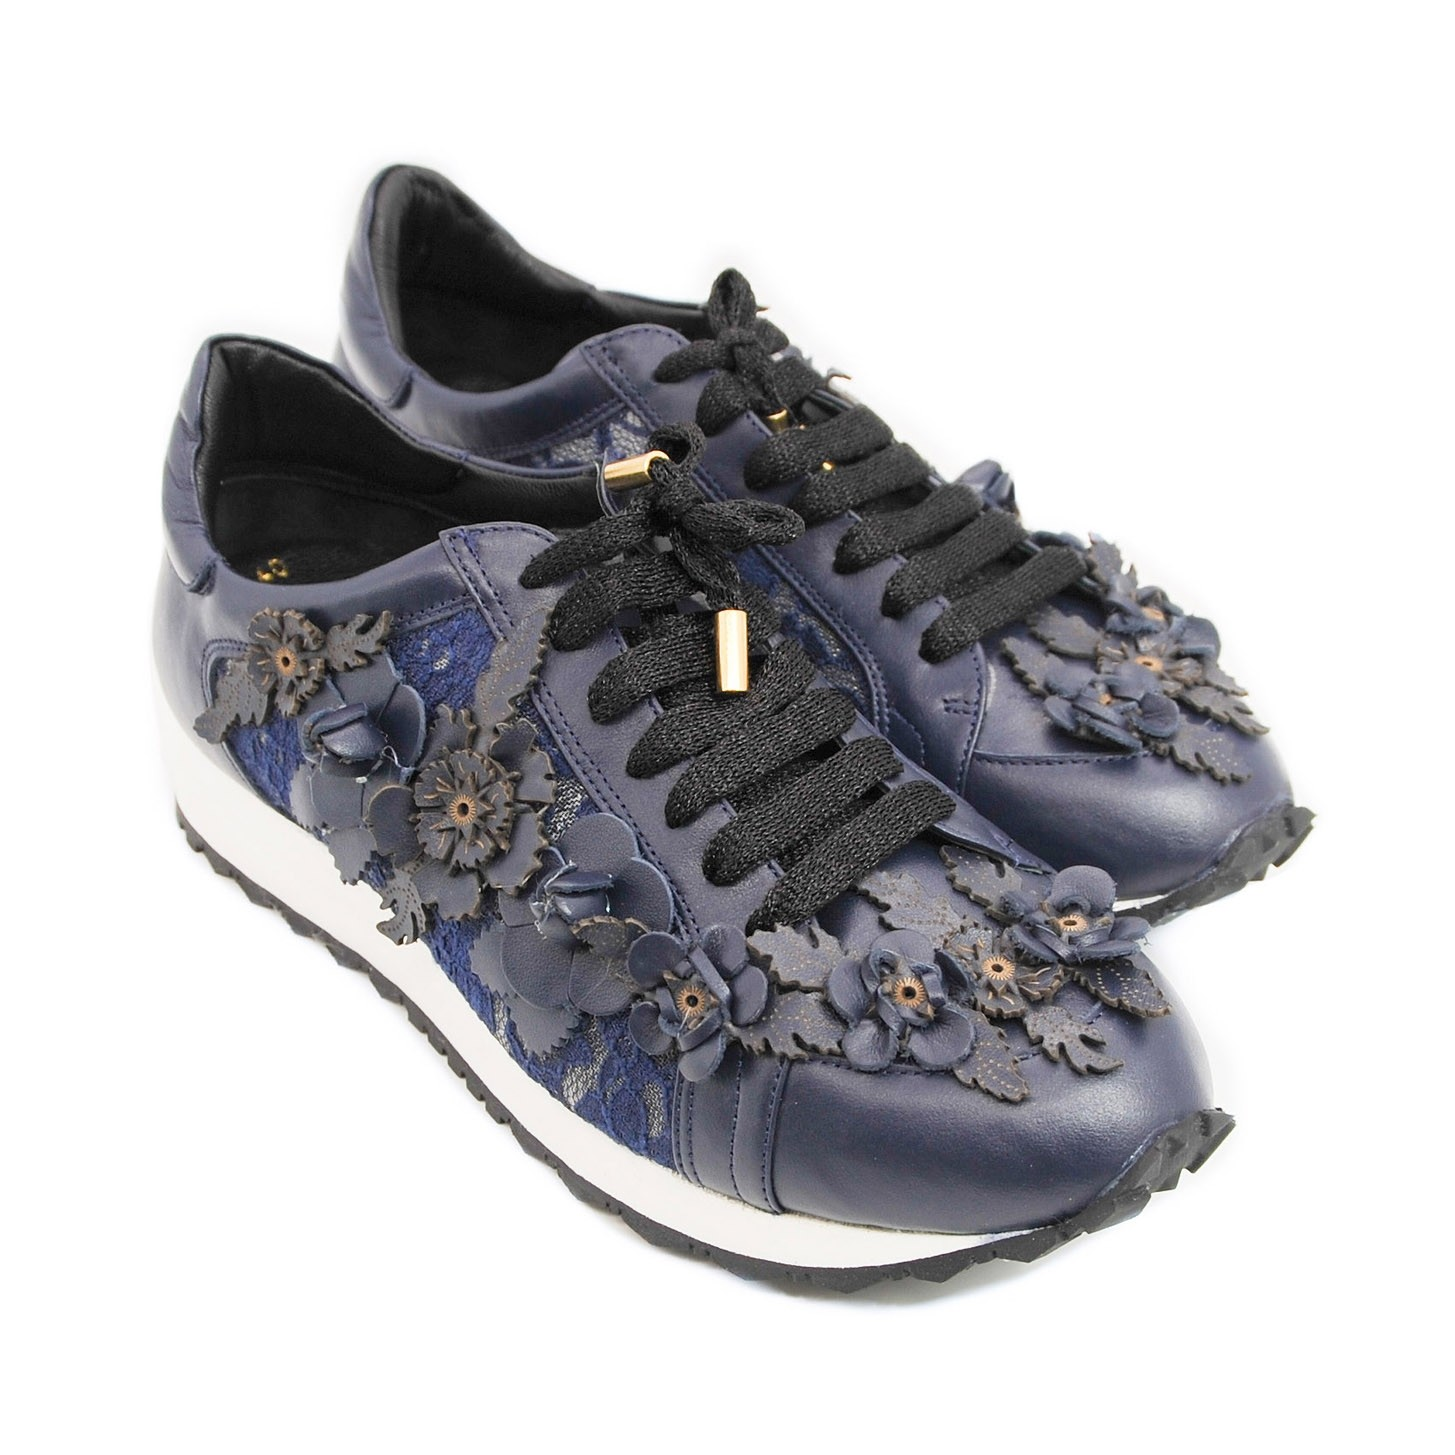 Uniquely Designed Flower Leather Trainer Pumps with Contrasting Lace and White Sole - Navy